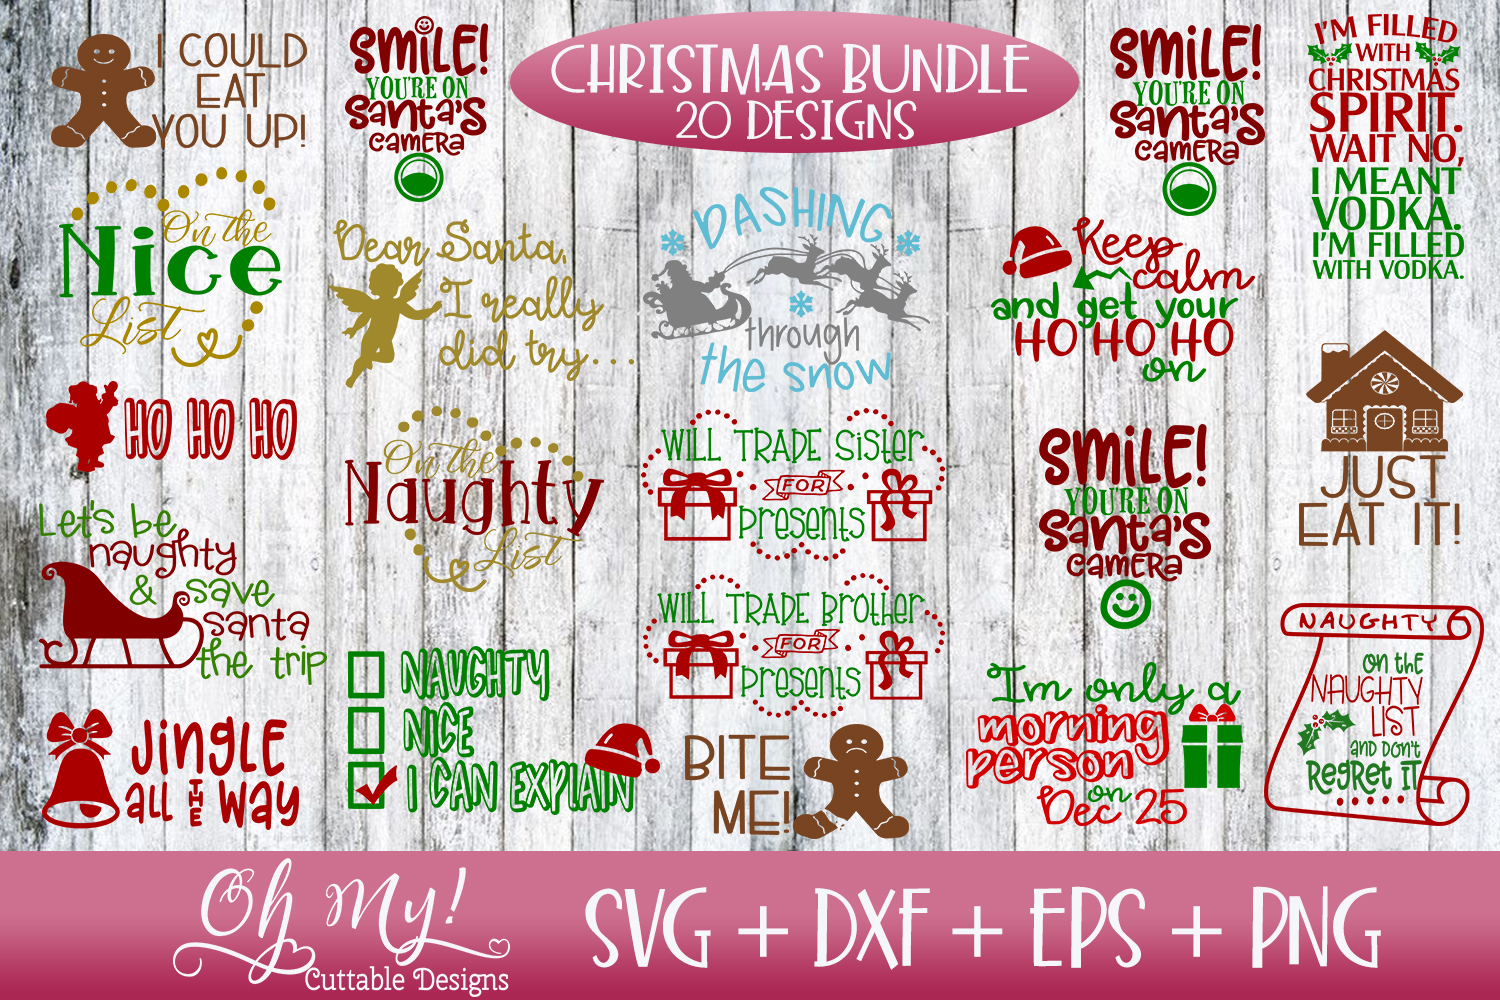 Christmas Bundle 20 Designs SVG EPS DXF Cutting Files example image 2